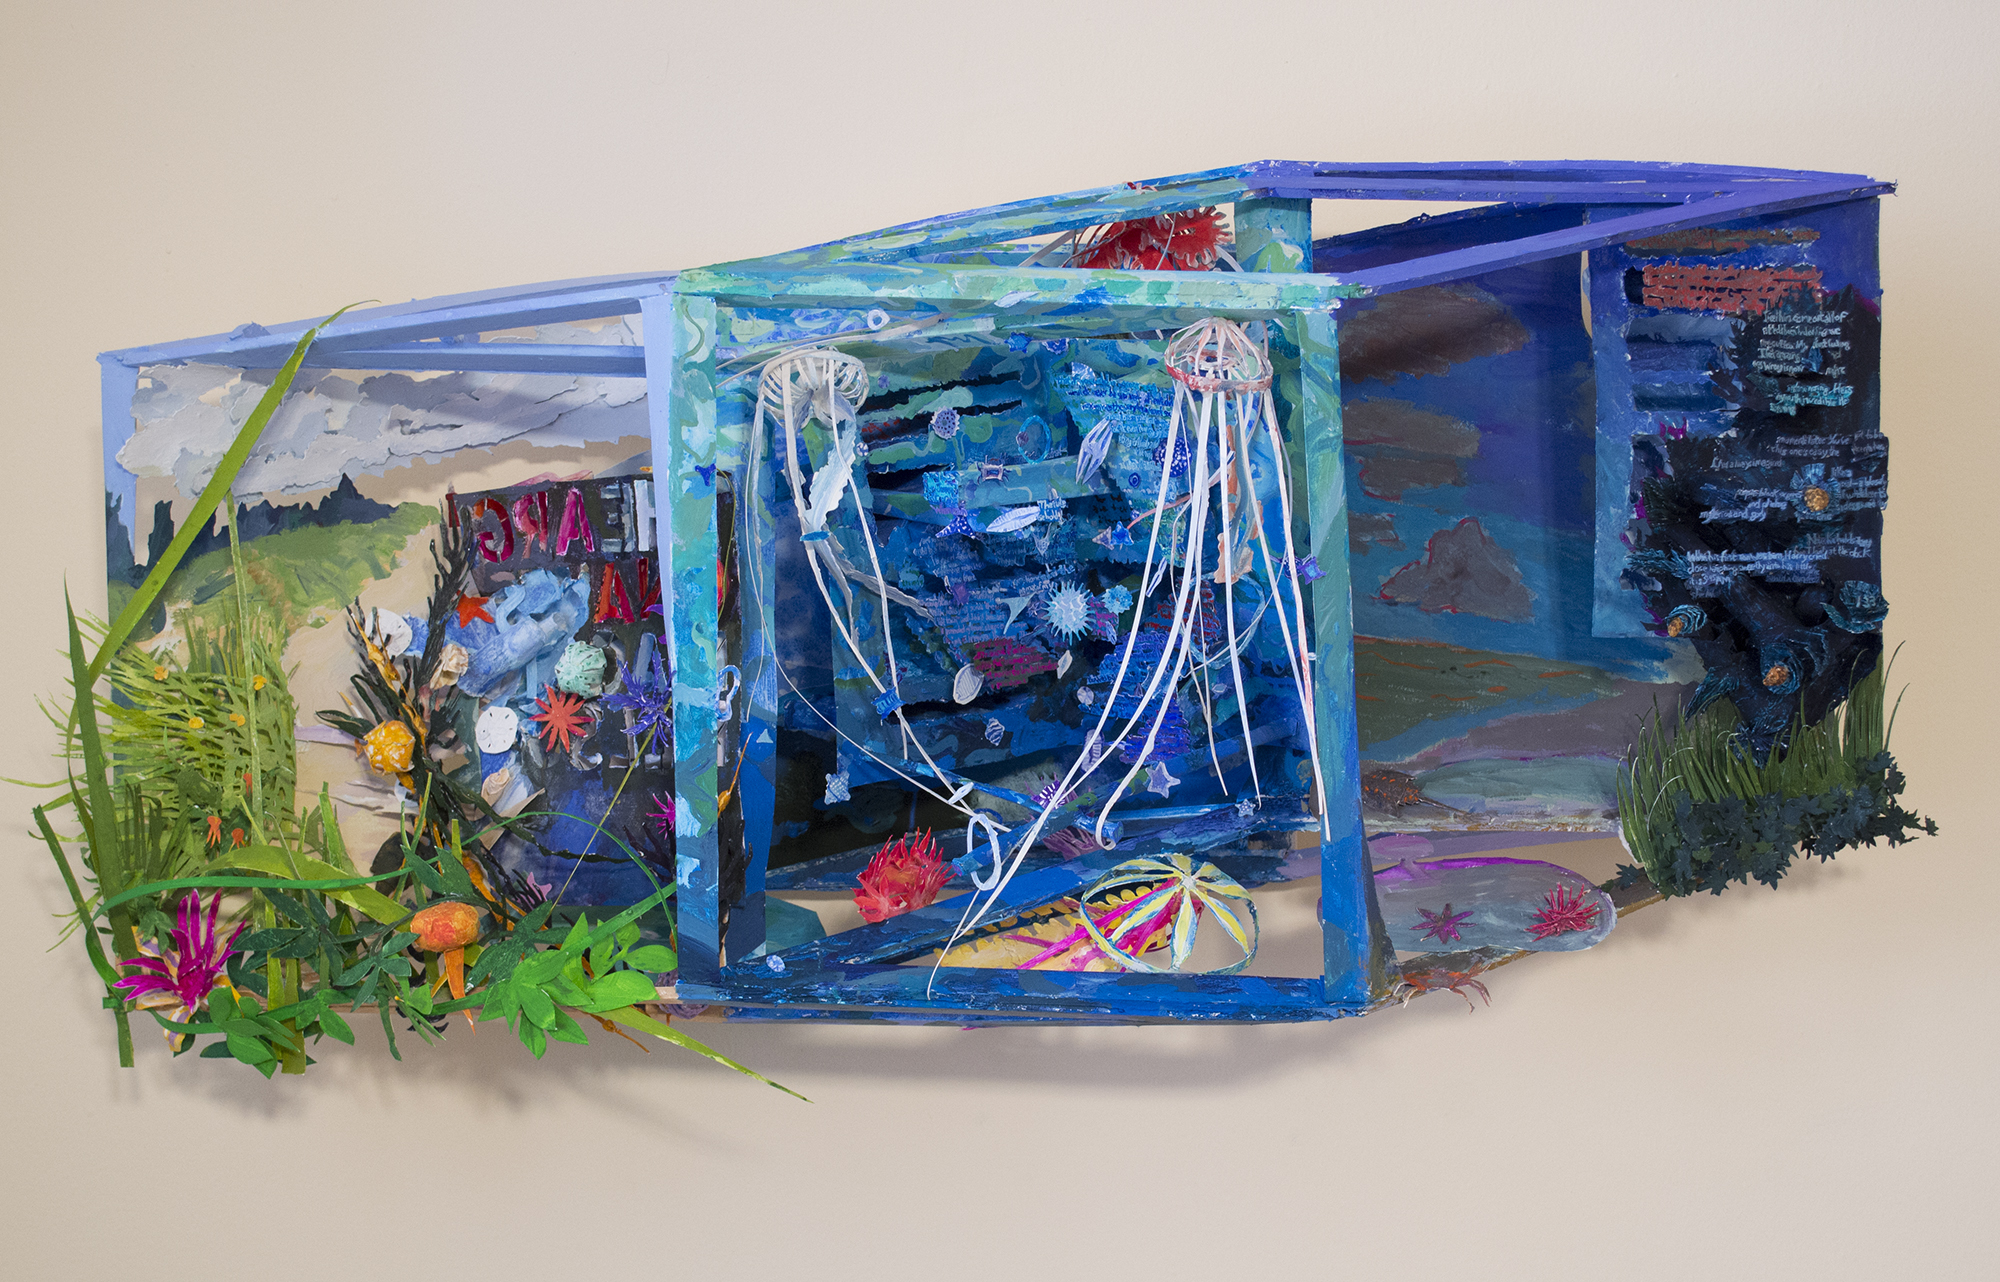 Beach Reading, 2019, gouache on paper construction with wood support, 16 x 38 x 10 inches